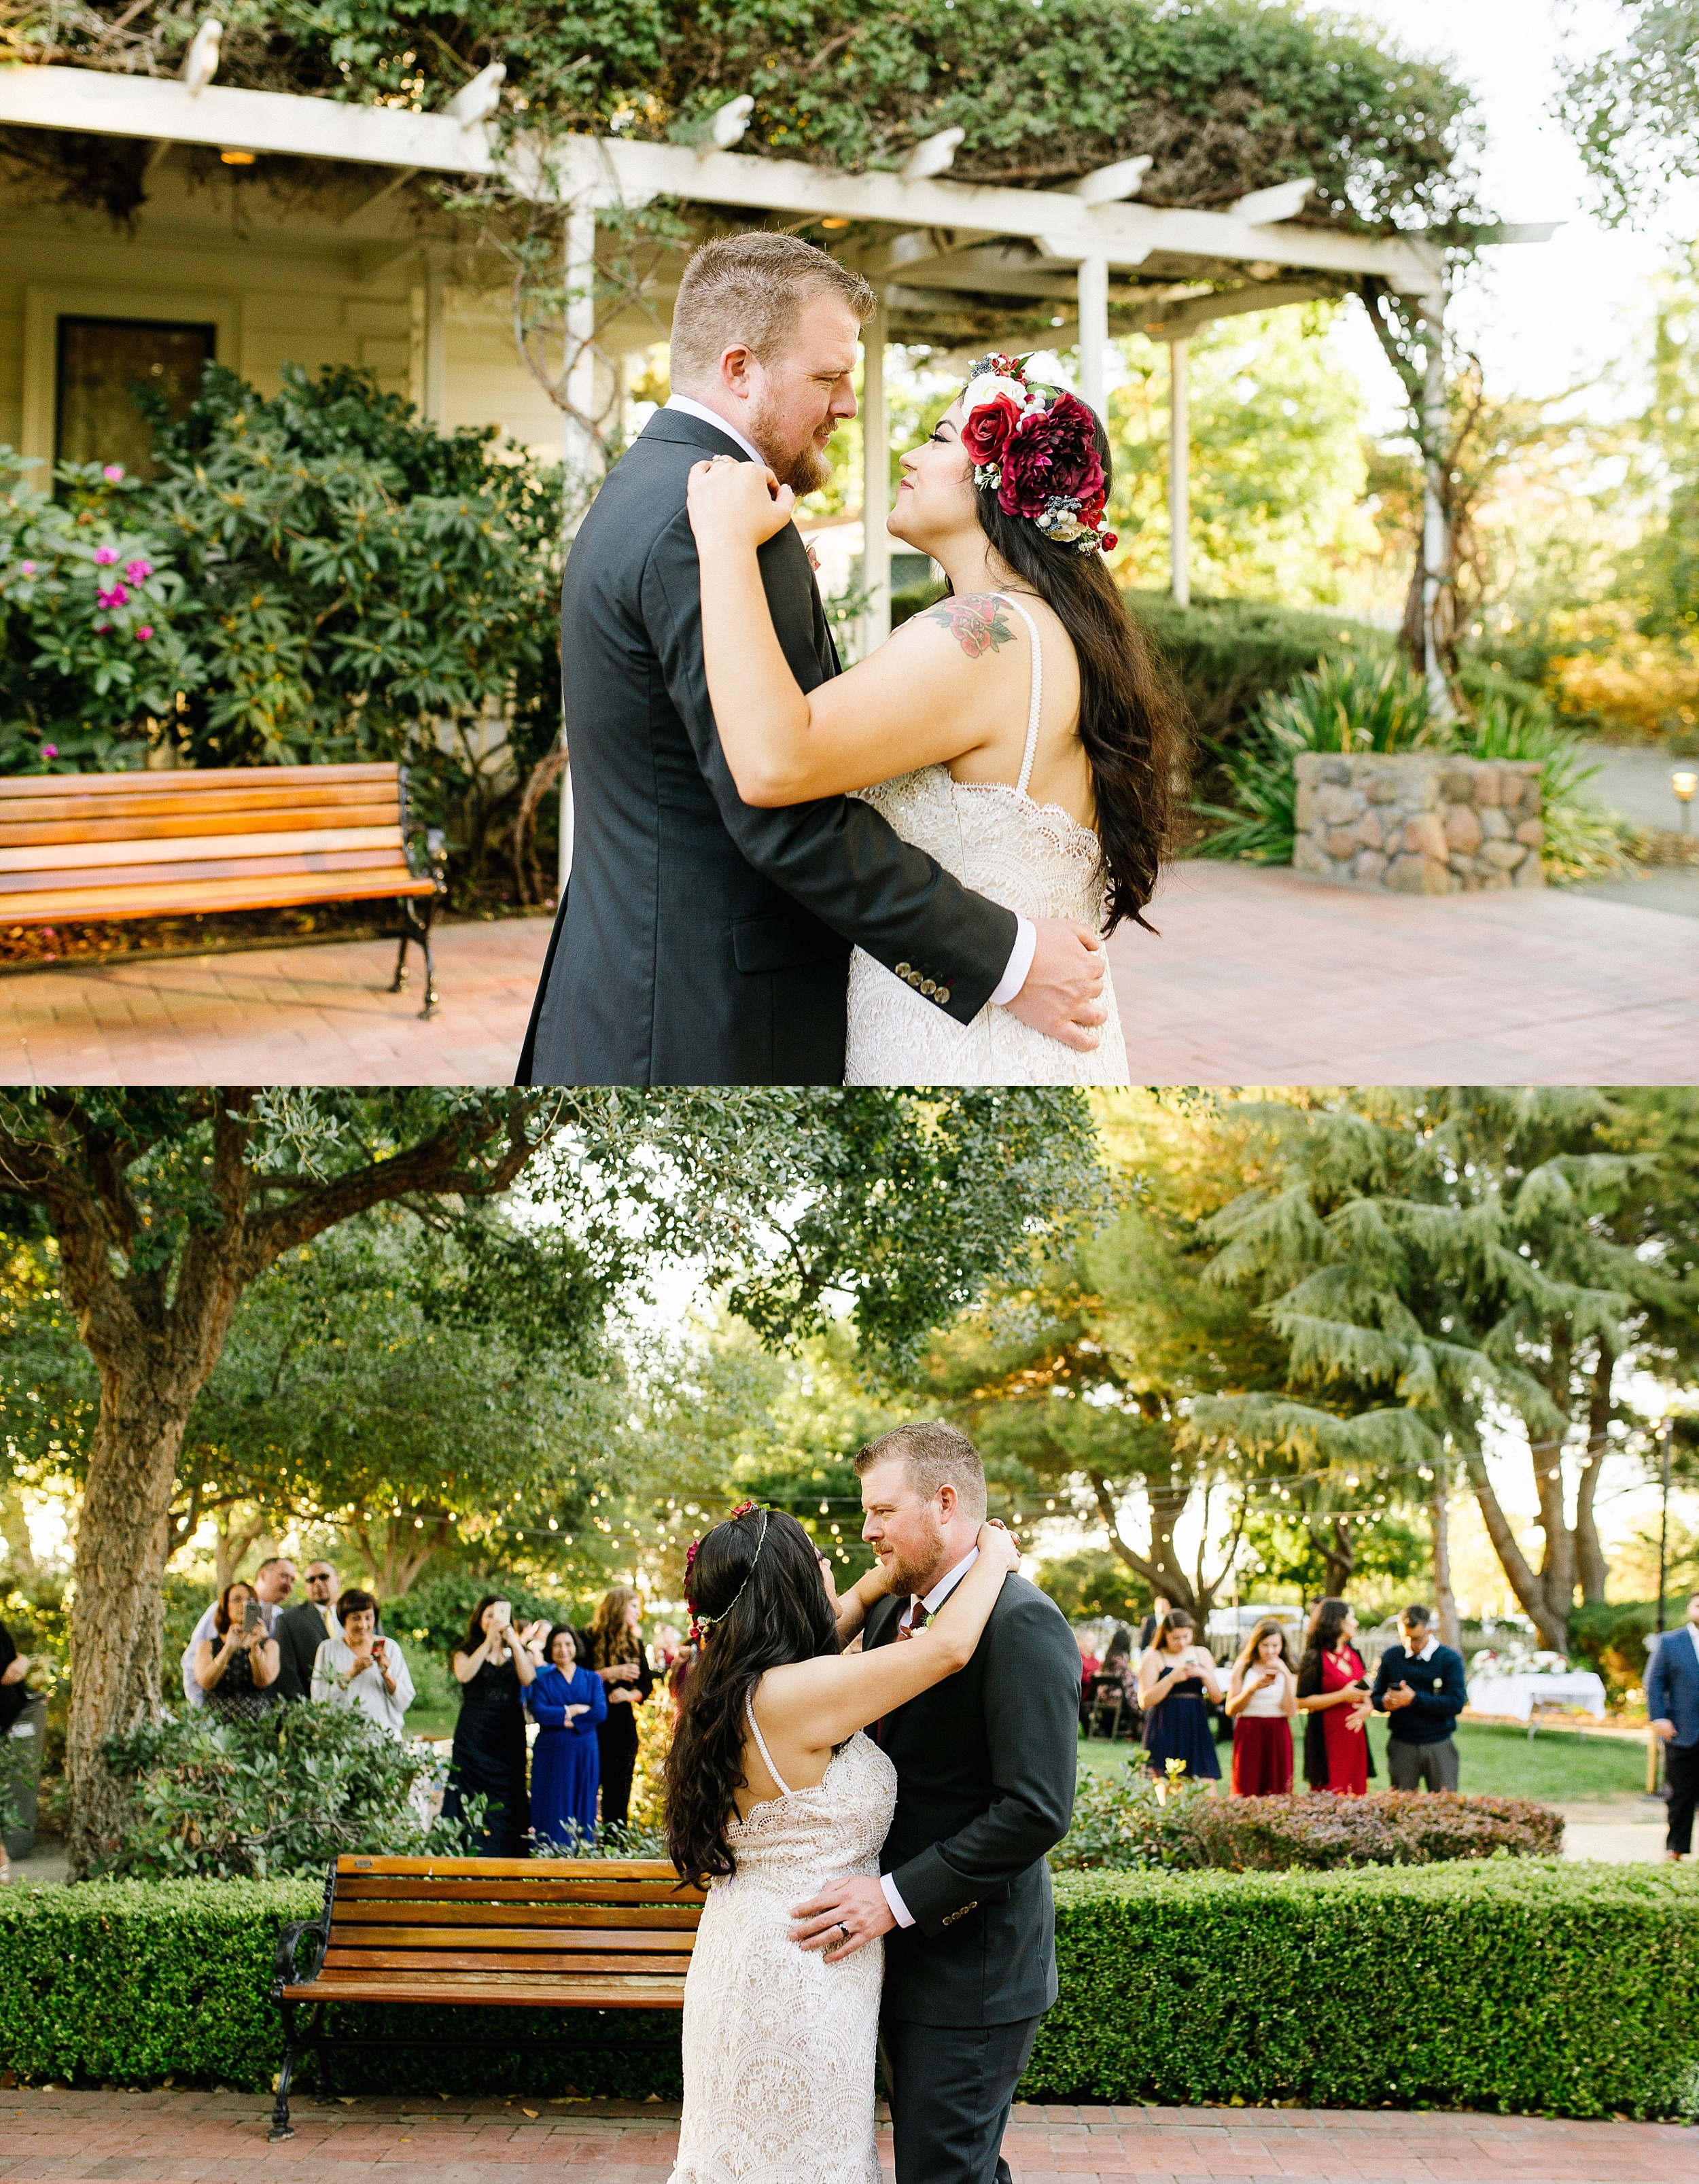 enissablake_Rengstorff_house_outdoor_wedding_cdp_0034.jpg